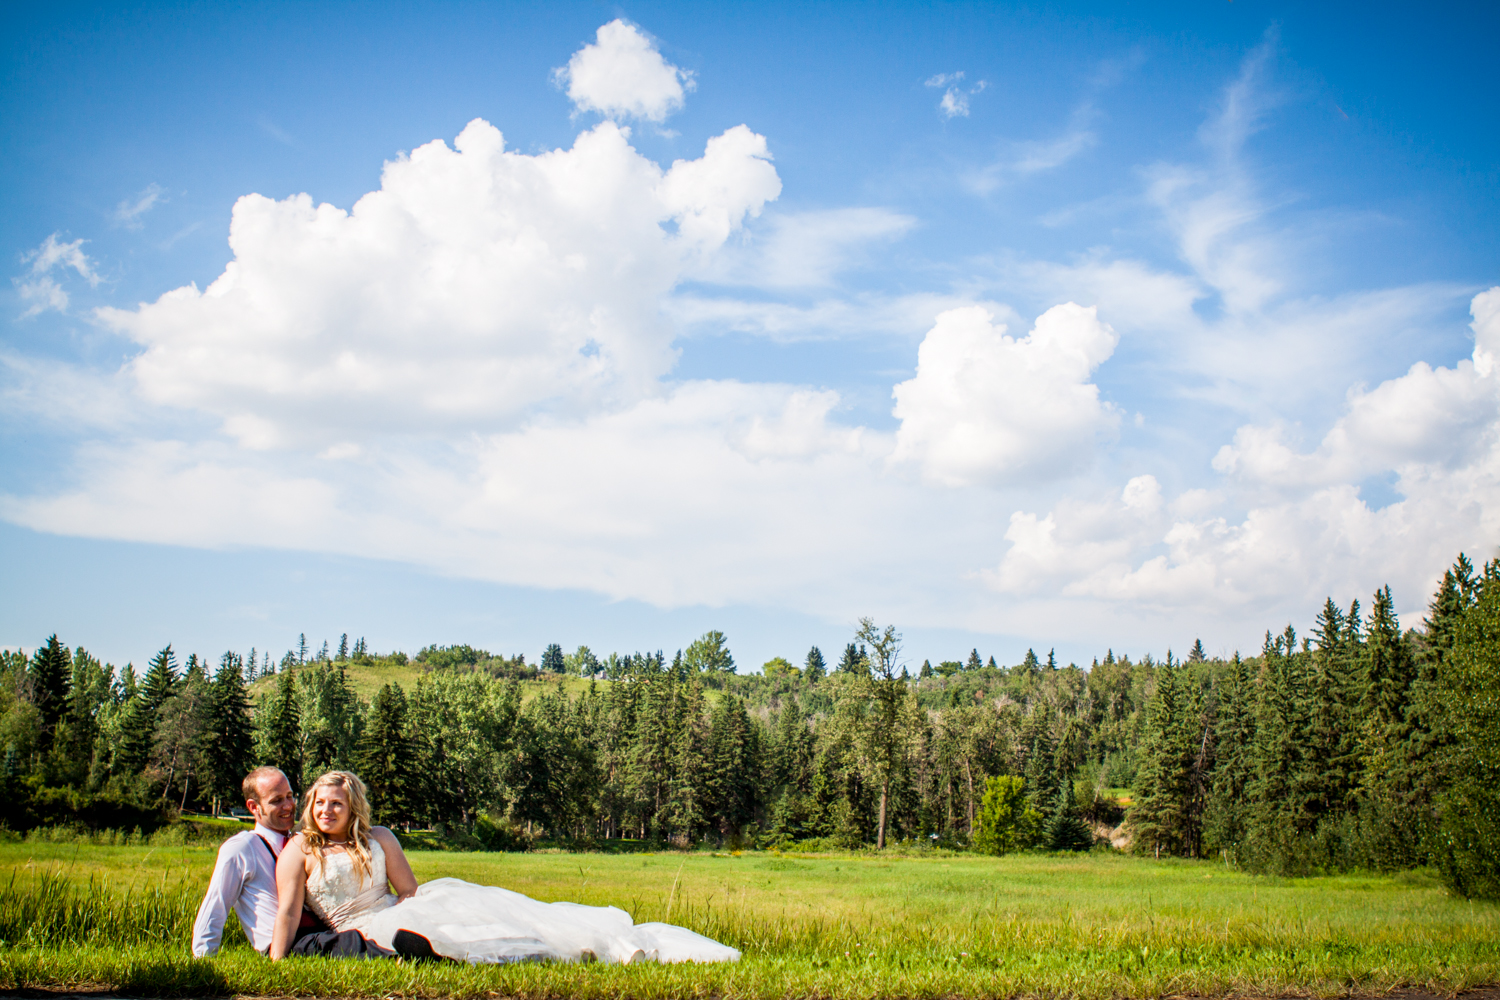 Erica & Tyler - Wedding - 1483-Edit.jpg